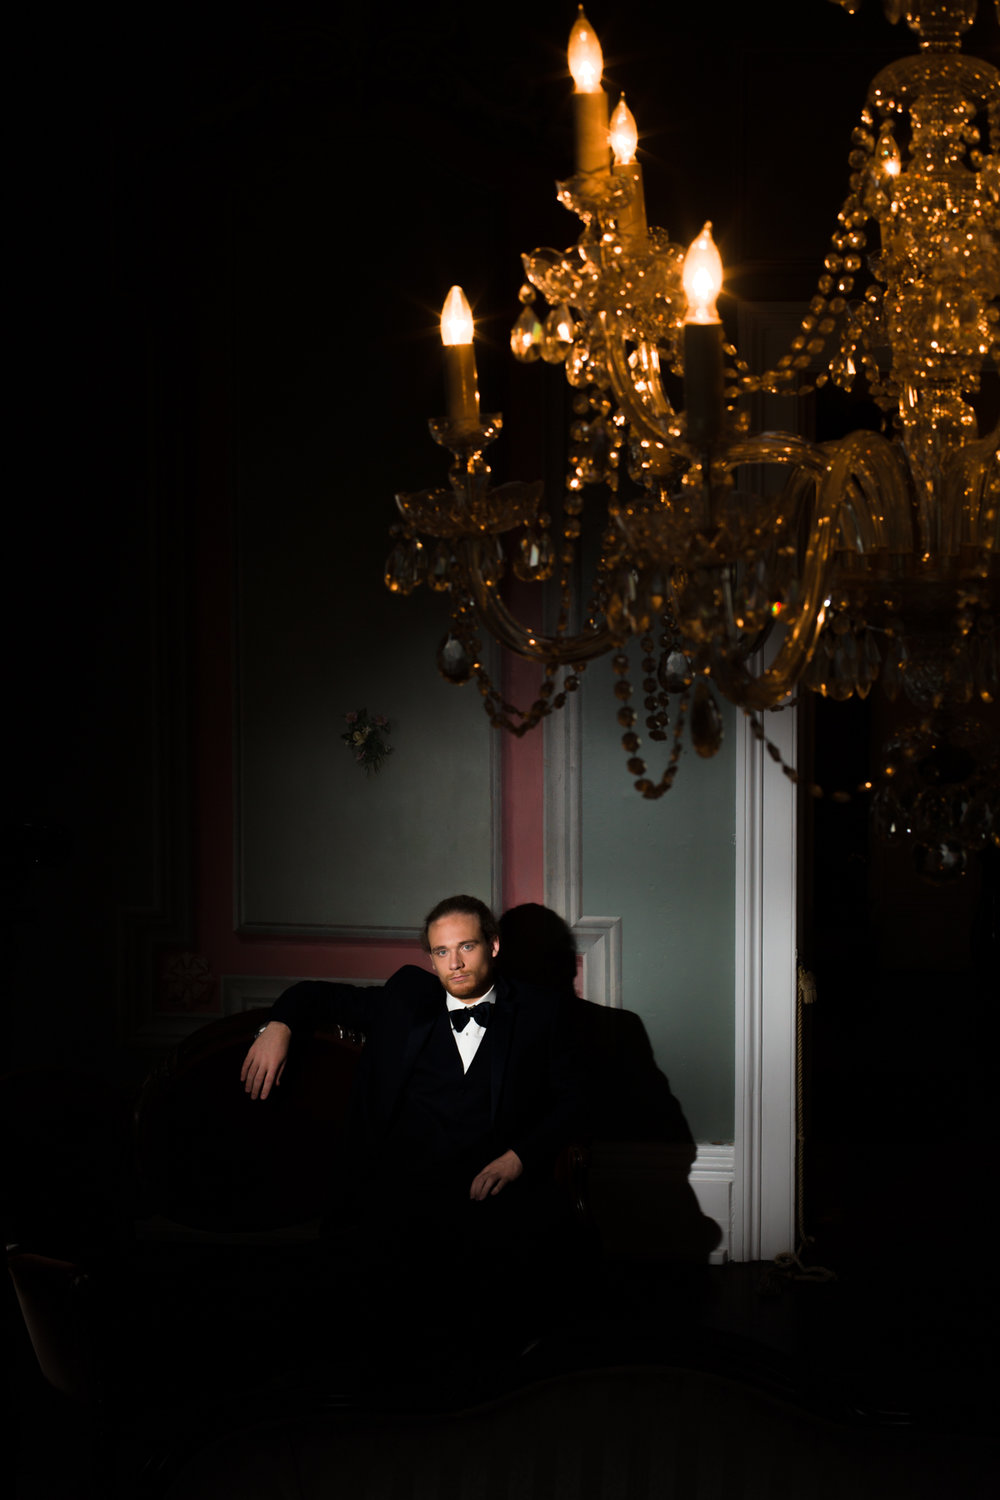 Groom portrait at Bleak House, a historic home in Knoxville, TN.